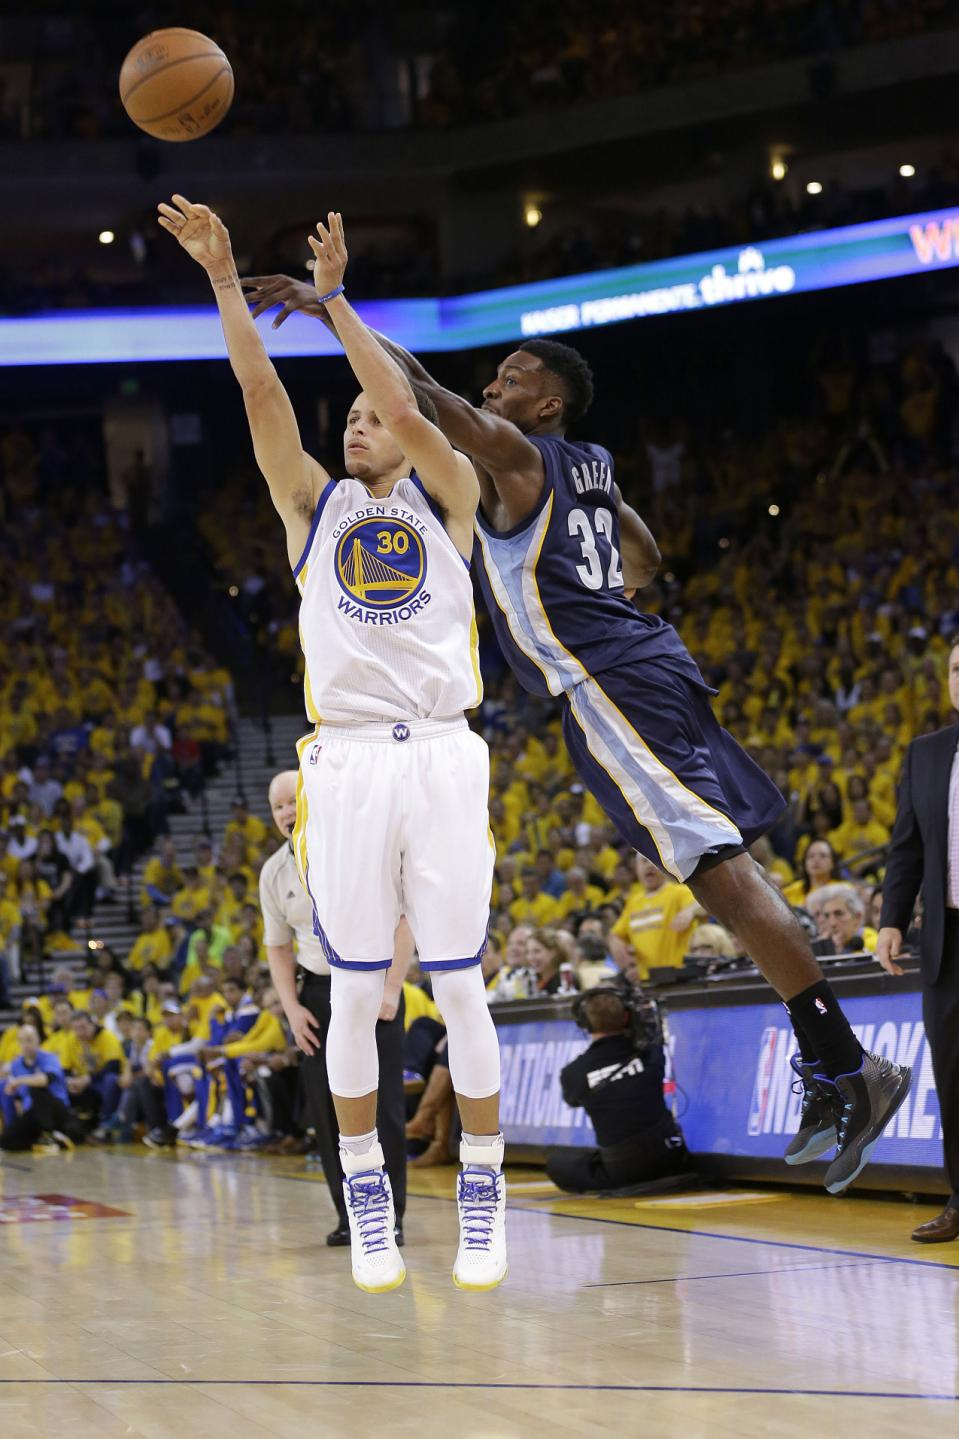 Golden State Warriors guard Stephen Curry (30) shoots a three point basket, which he made, in front of Memphis Grizzlies forward Jeff Green (32) during the second half of Game 1 in a second-round NBA playoff basketball series in Oakland, Calif.,...